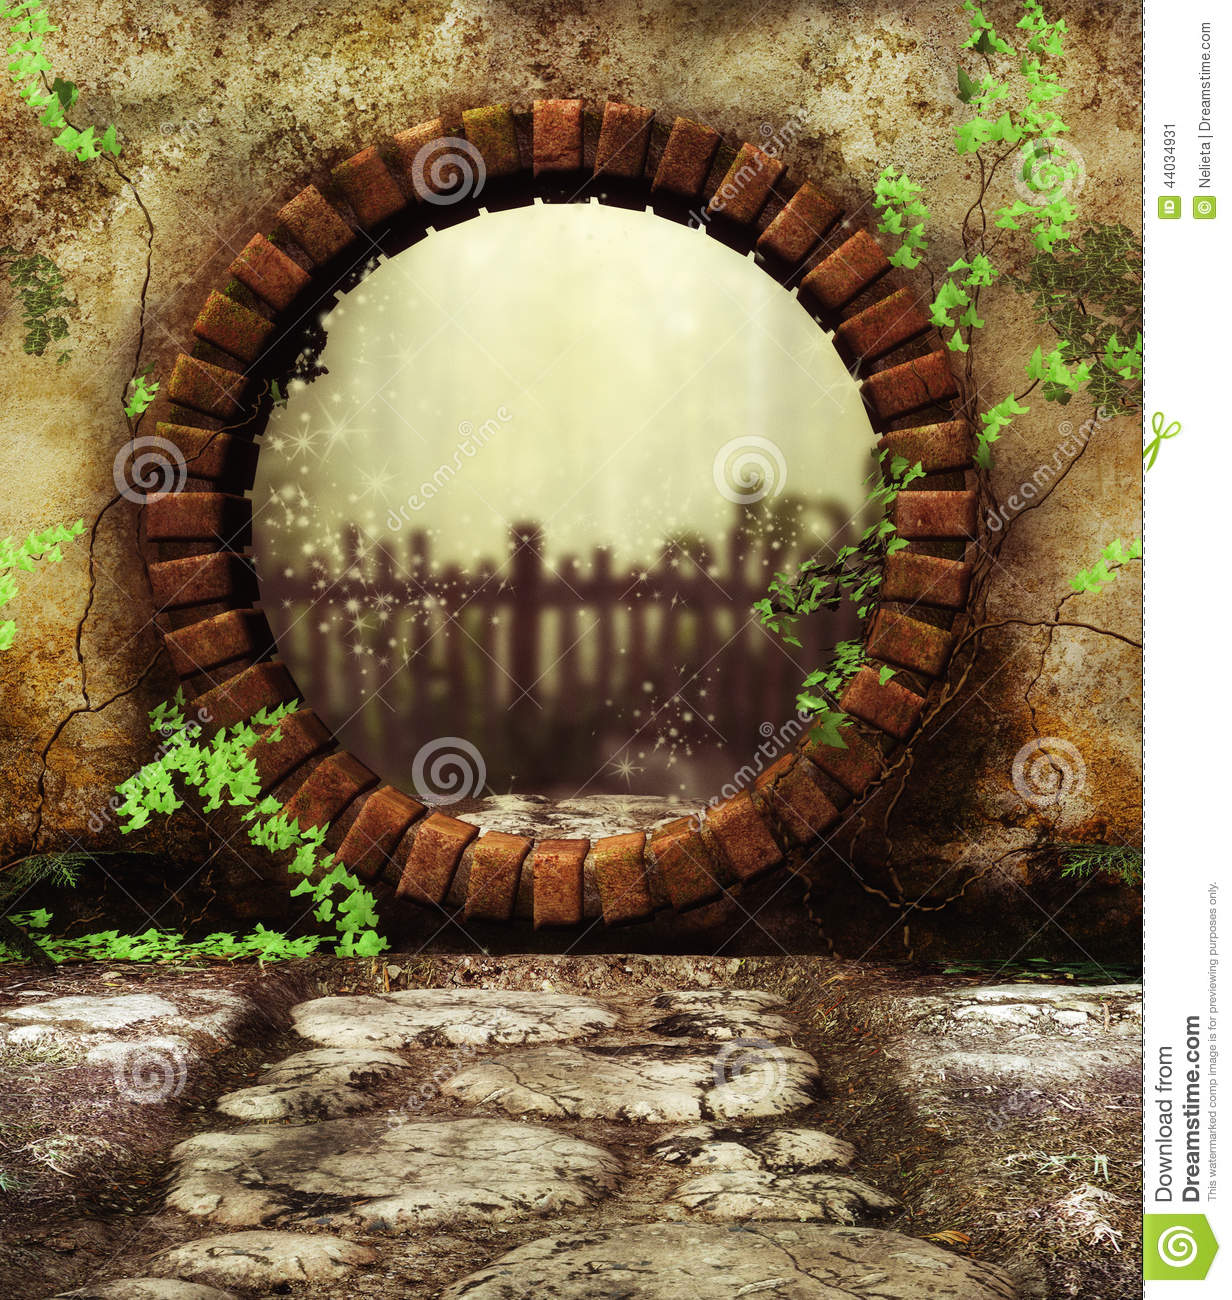 Secret garden Gate stock illustration. Illustration of doorway ...